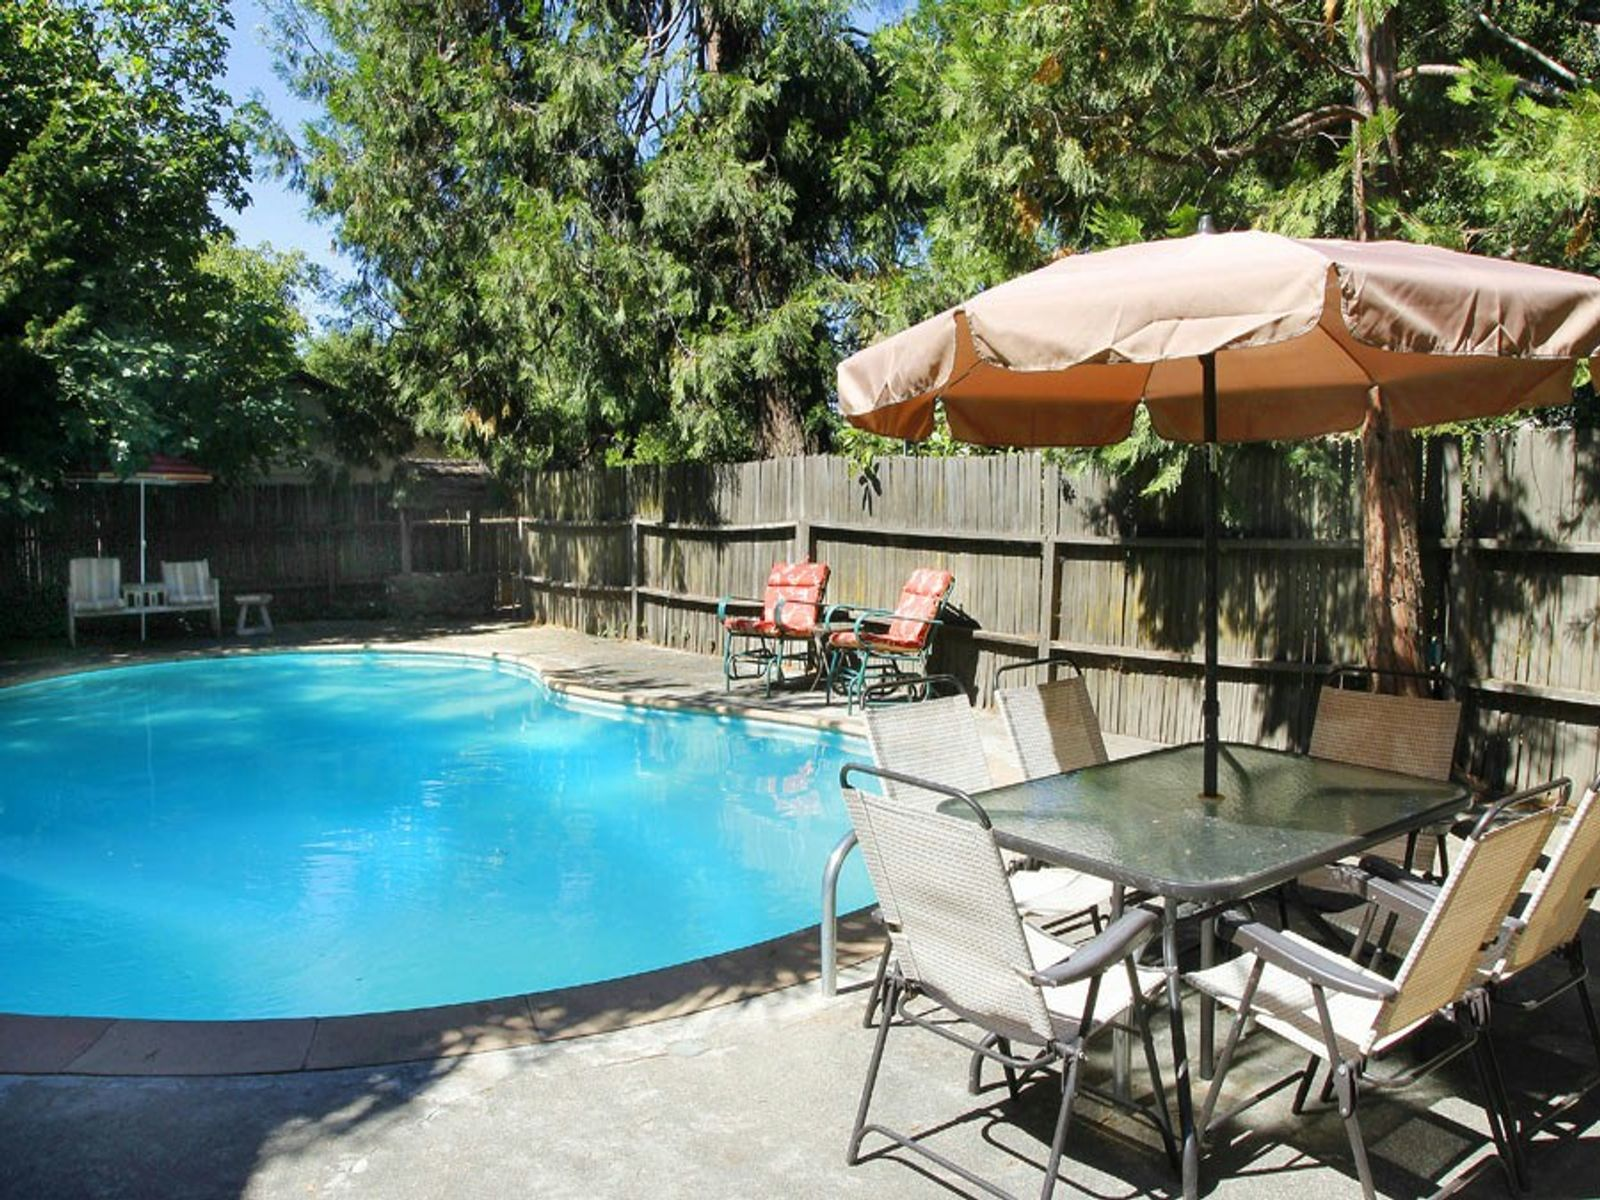 East Side Sonoma Valley, Sonoma CA Single Family Home - Sonoma - Napa Real Estate